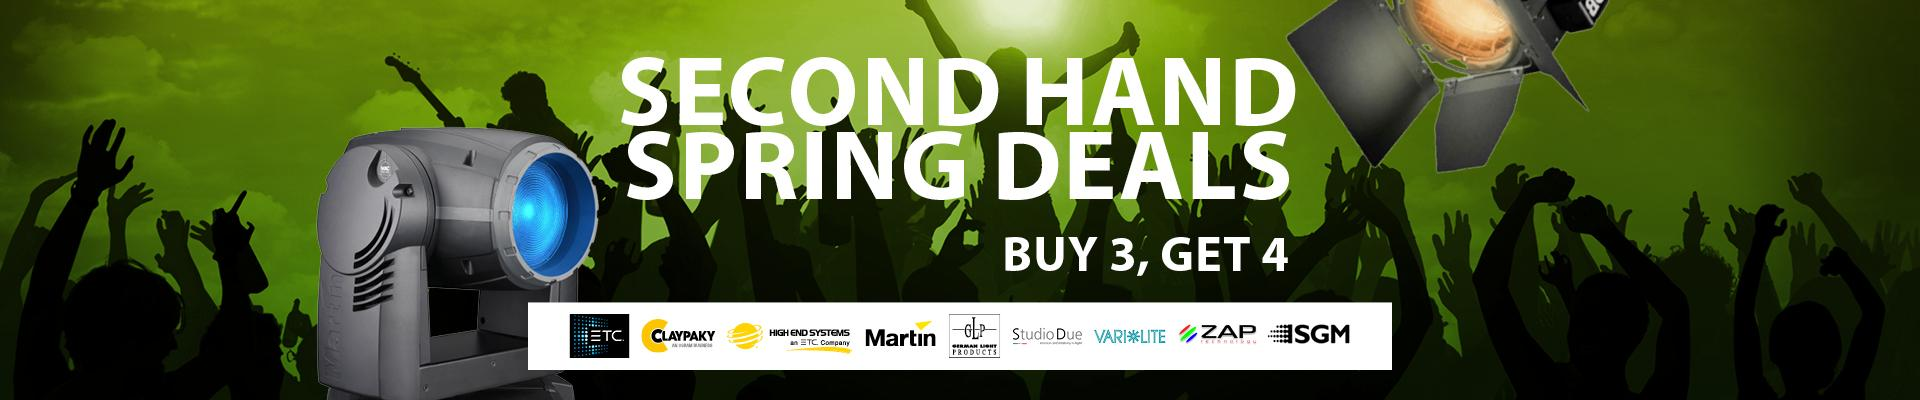 Second Hand Spring Deals